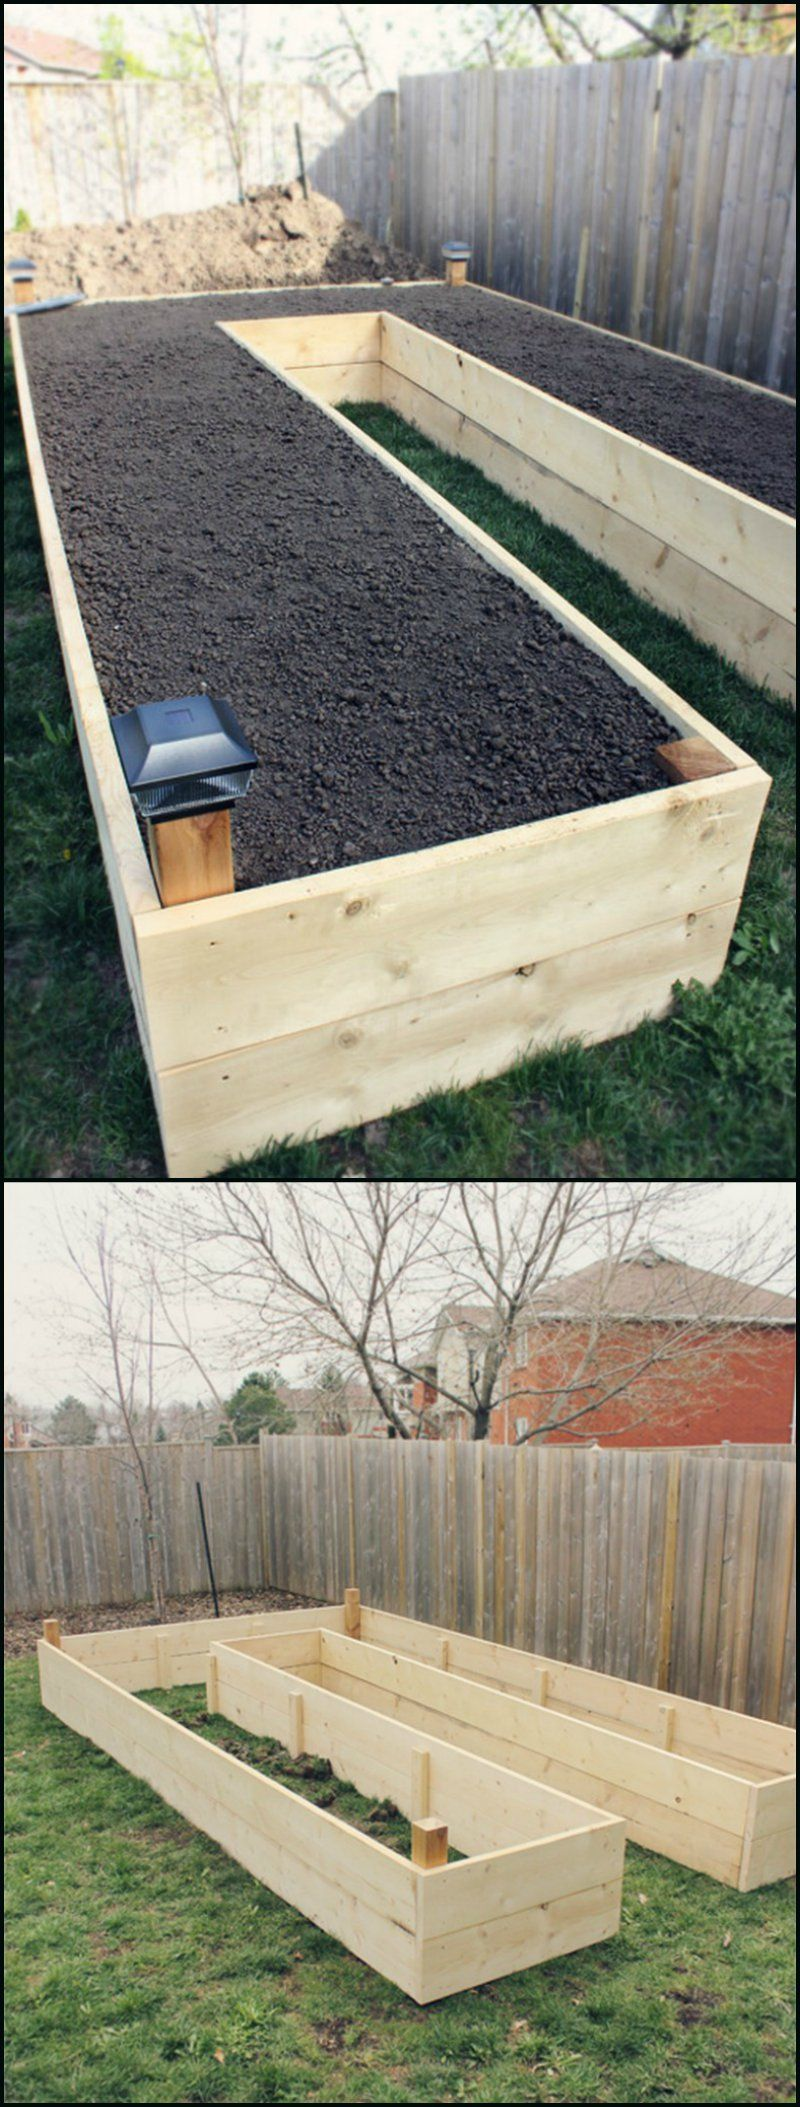 Questions about the recycled plastic raised garden bed 3 x 6 x 11 quot - 12 Well Designed Easy Access Raised Garden Beds Http Theownerbuildernetwork Co